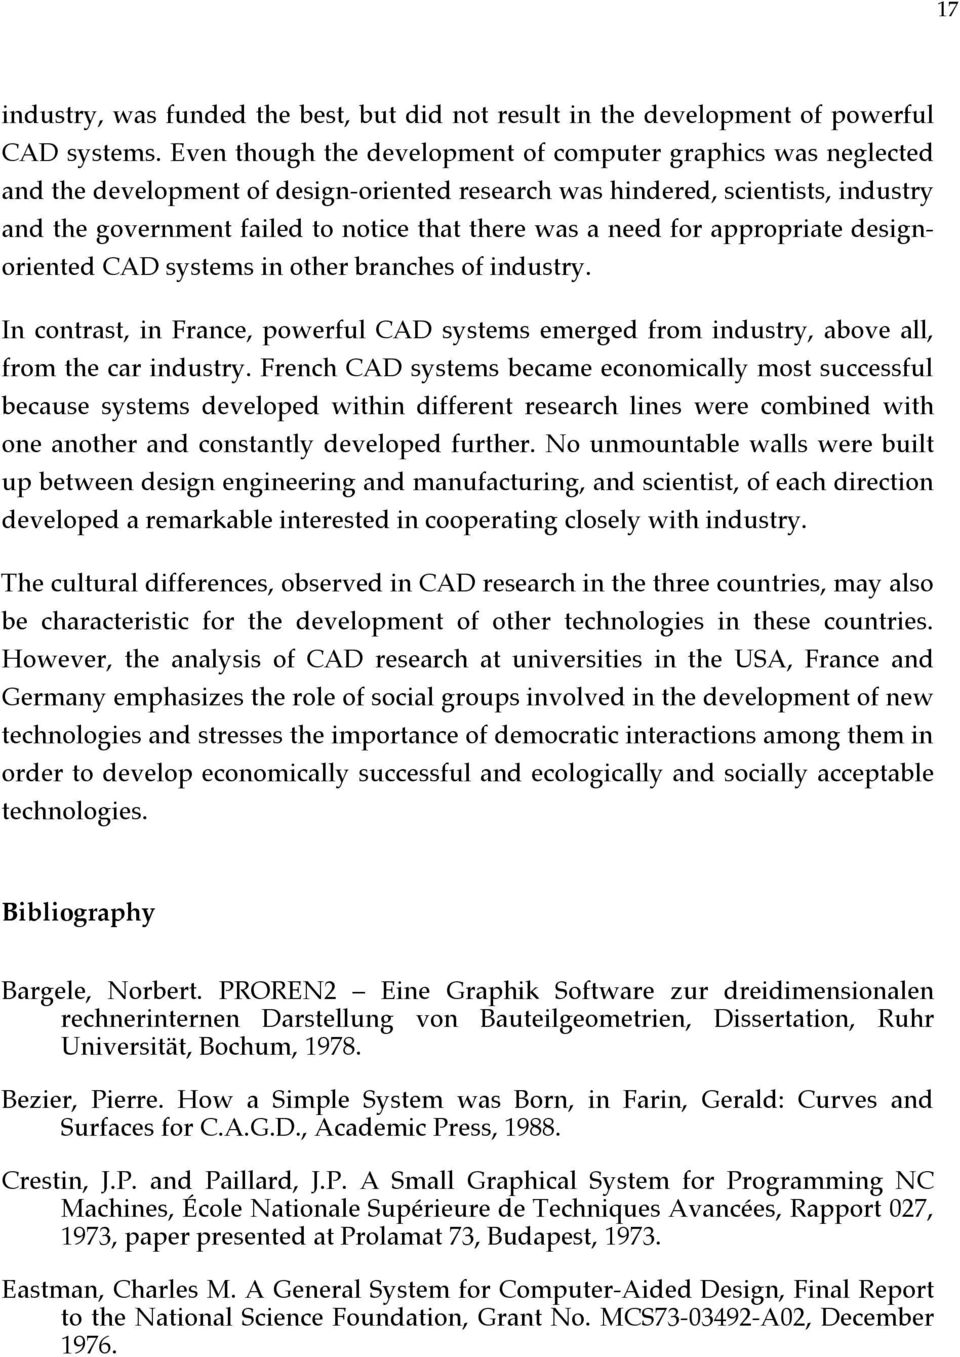 need for appropriate designoriented CAD systems in other branches of industry. In contrast, in France, powerful CAD systems emerged from industry, above all, from the car industry.